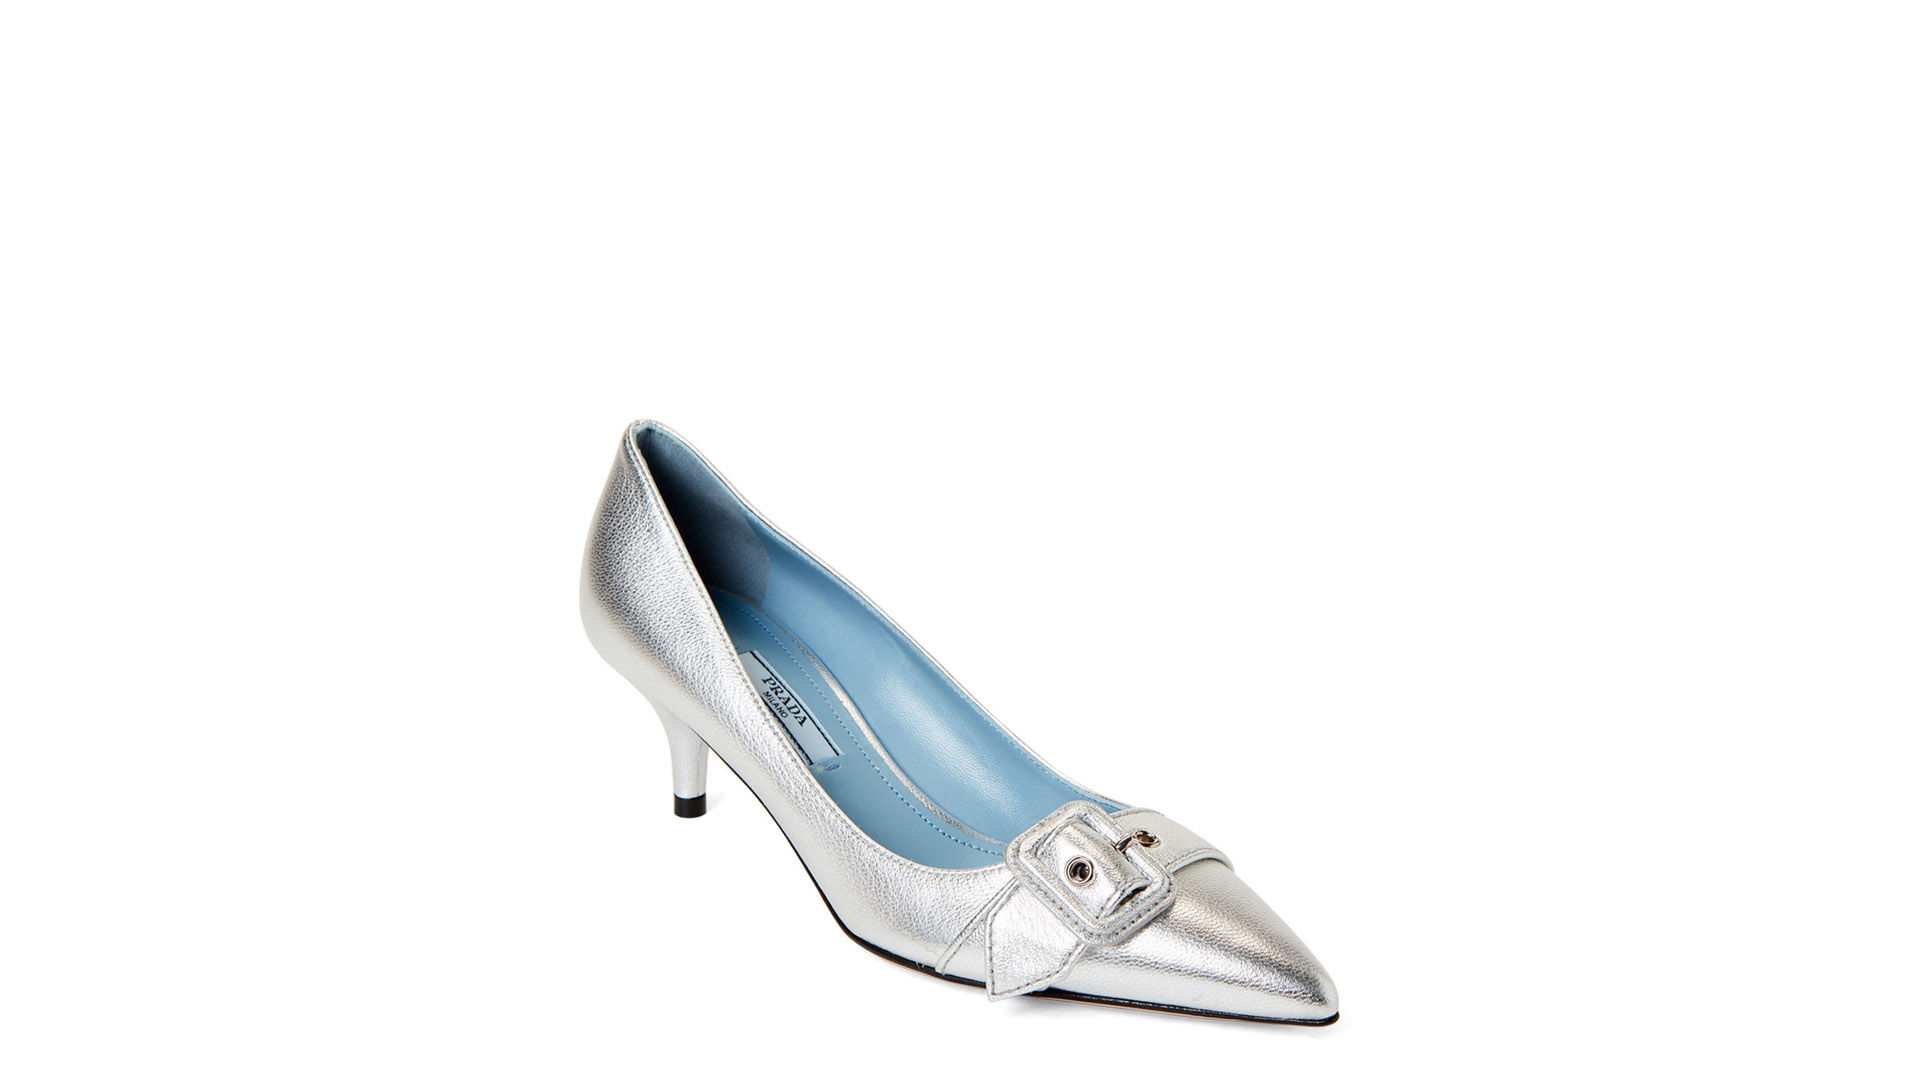 Prada Designer Shoes Silver Buckle Leather Pumps